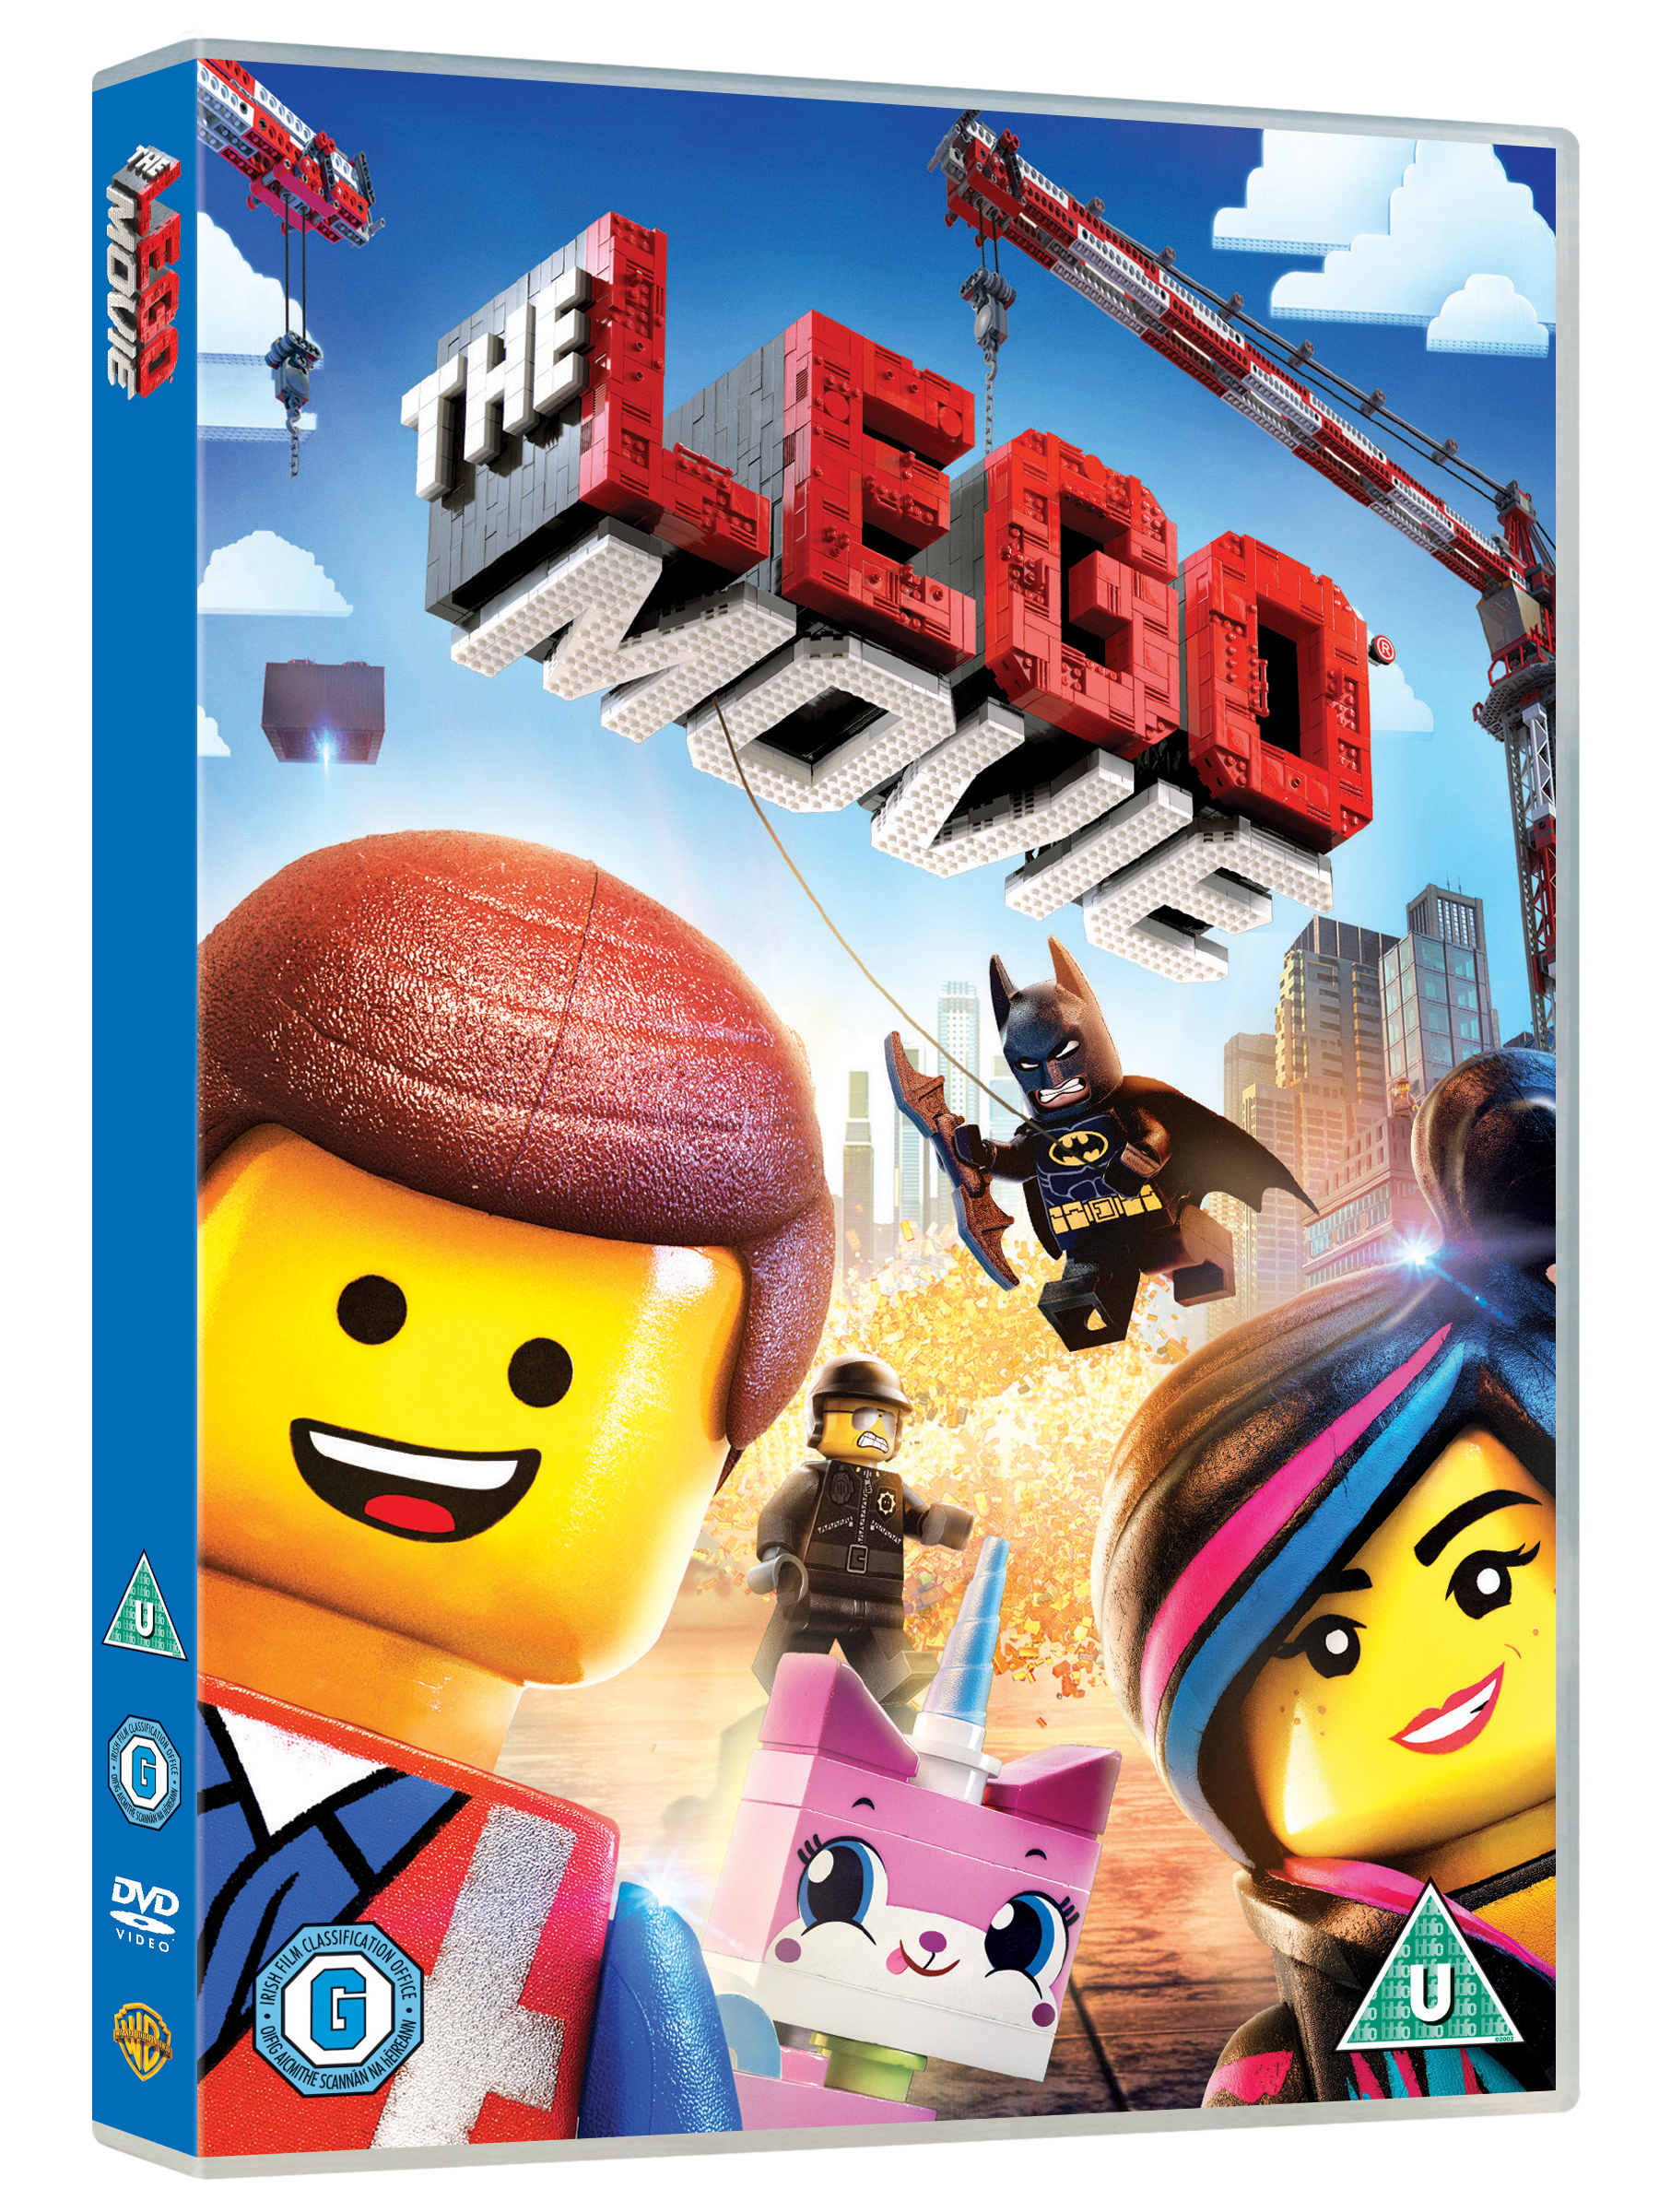 LEGO_MOVIE_DVD_3D_FRONT